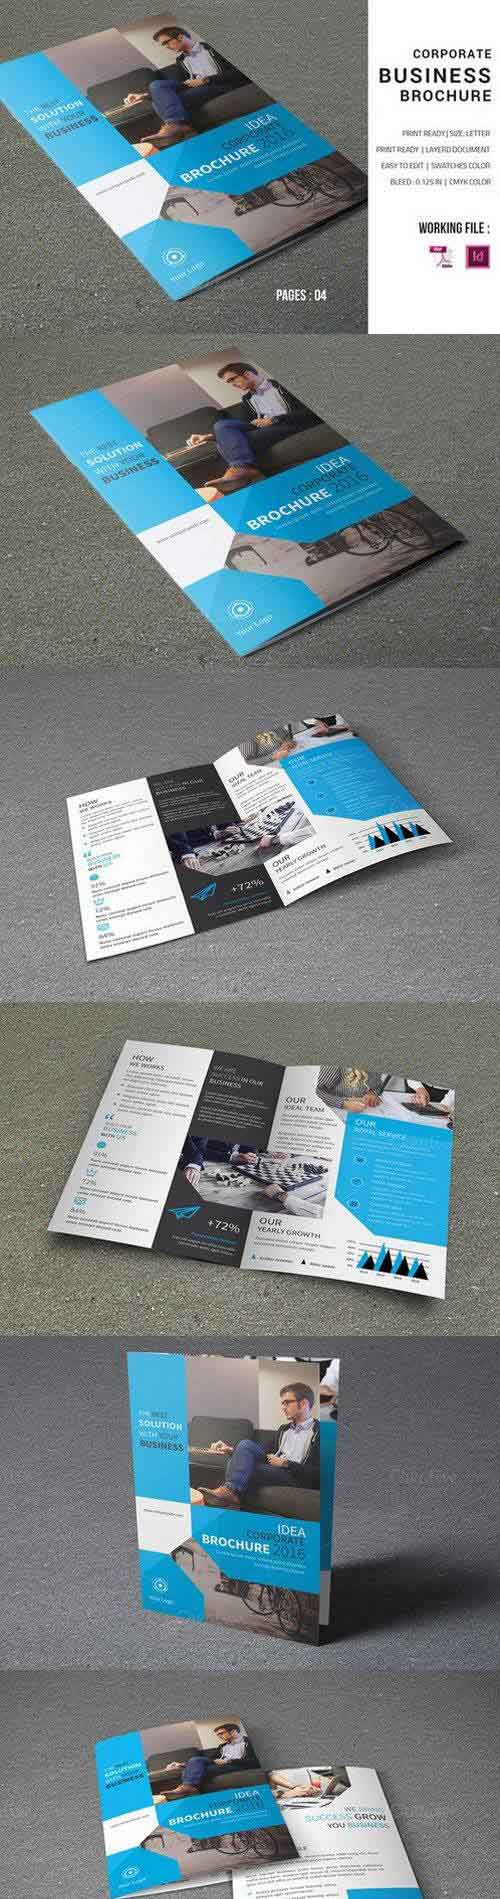 Corporate Brochure Template-V598 893897